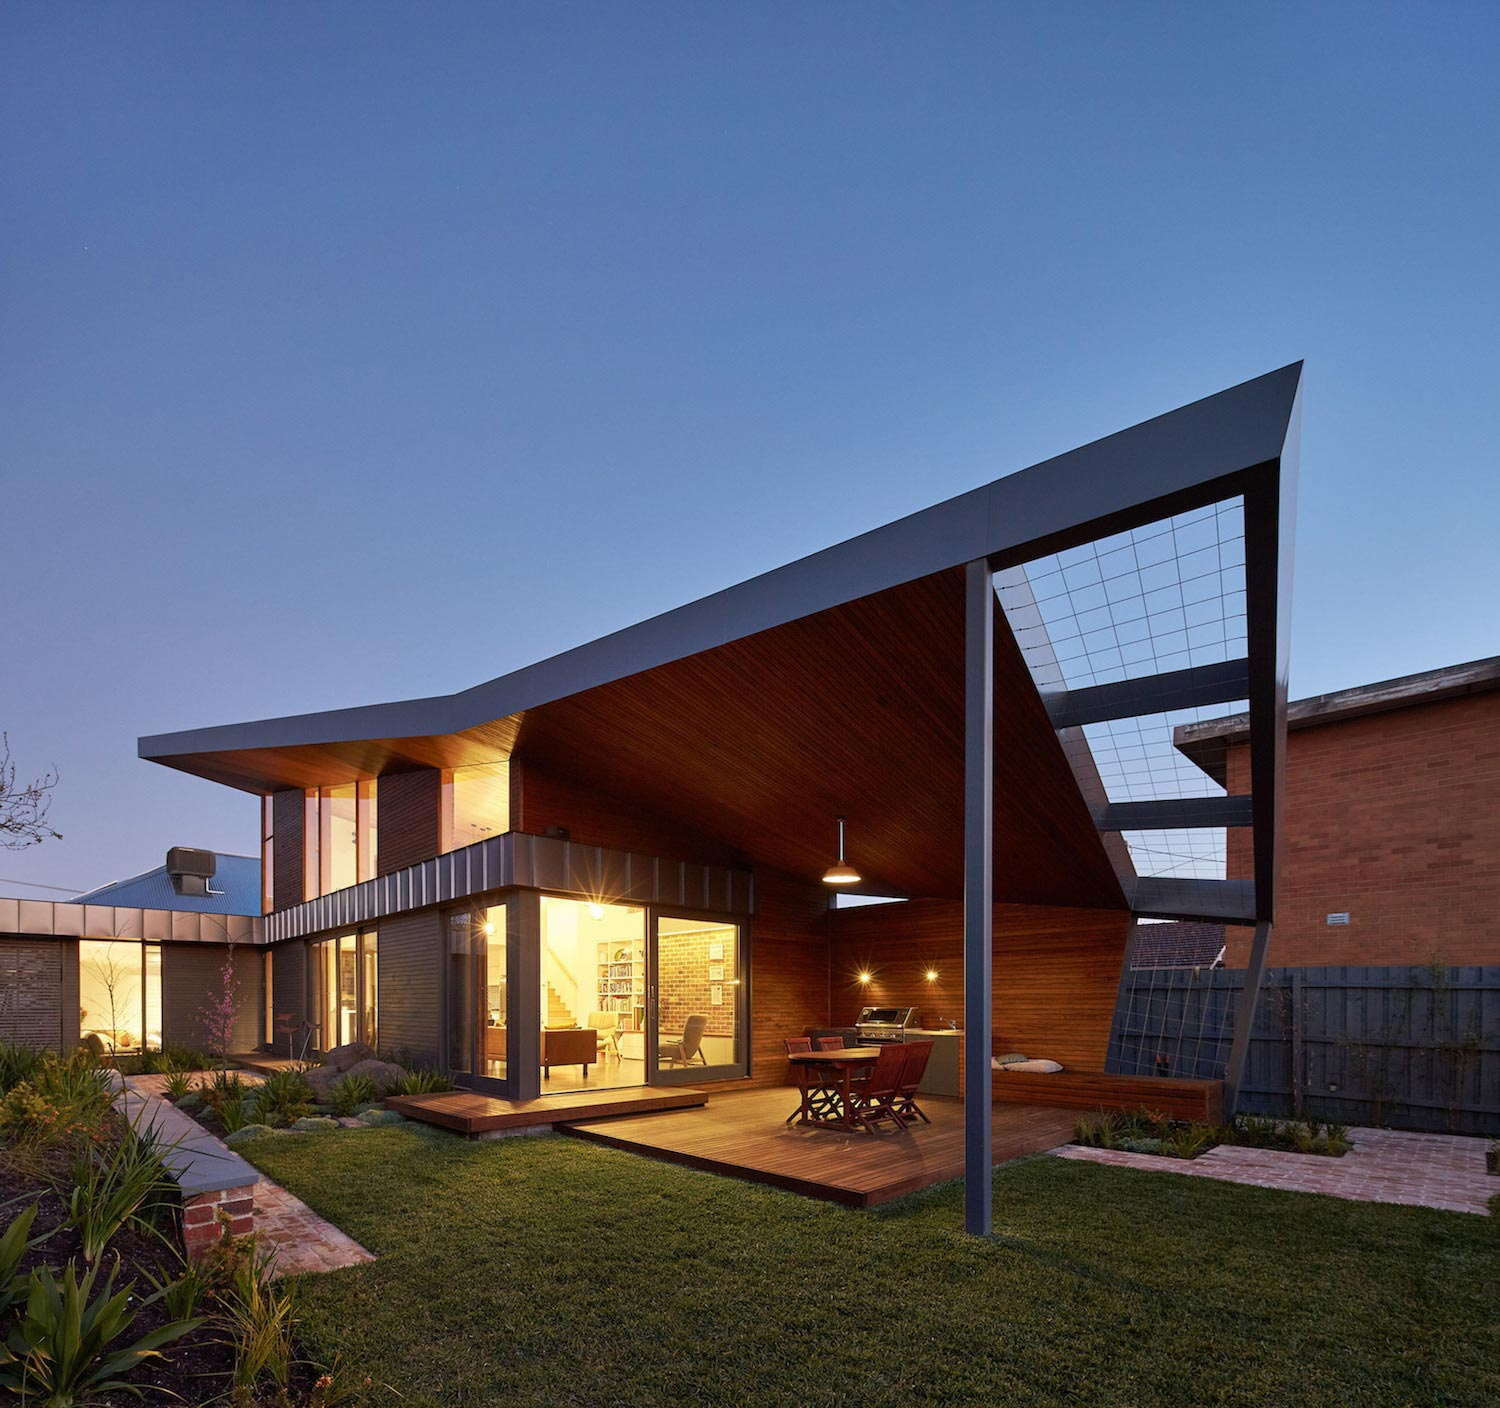 Guild Architects redesigned the Yarraville Garden House with